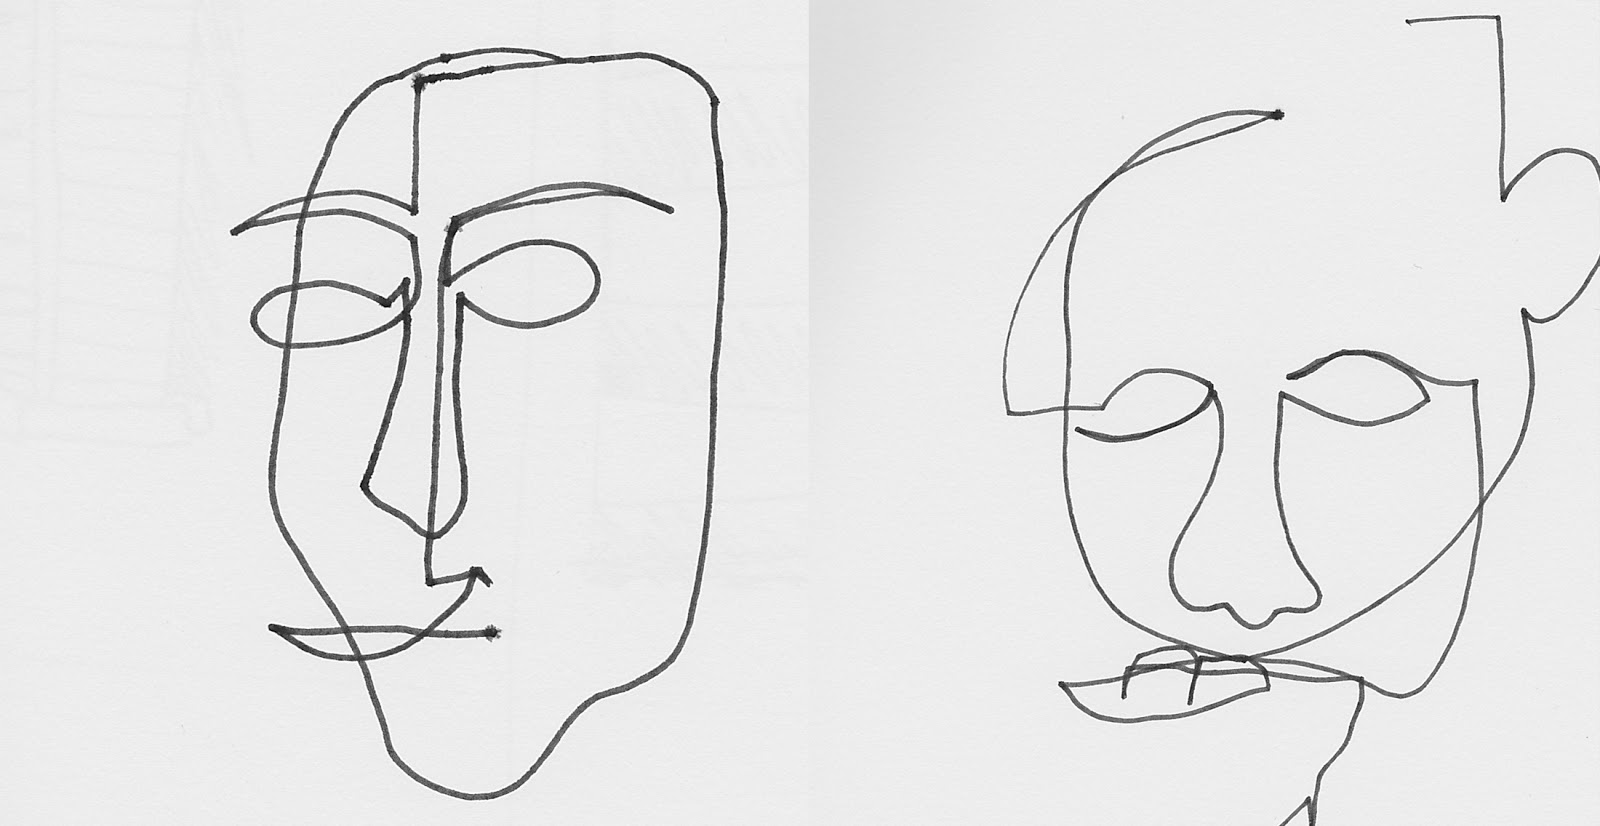 Continuous Line Drawing Of A Face : Design for the future single line faces